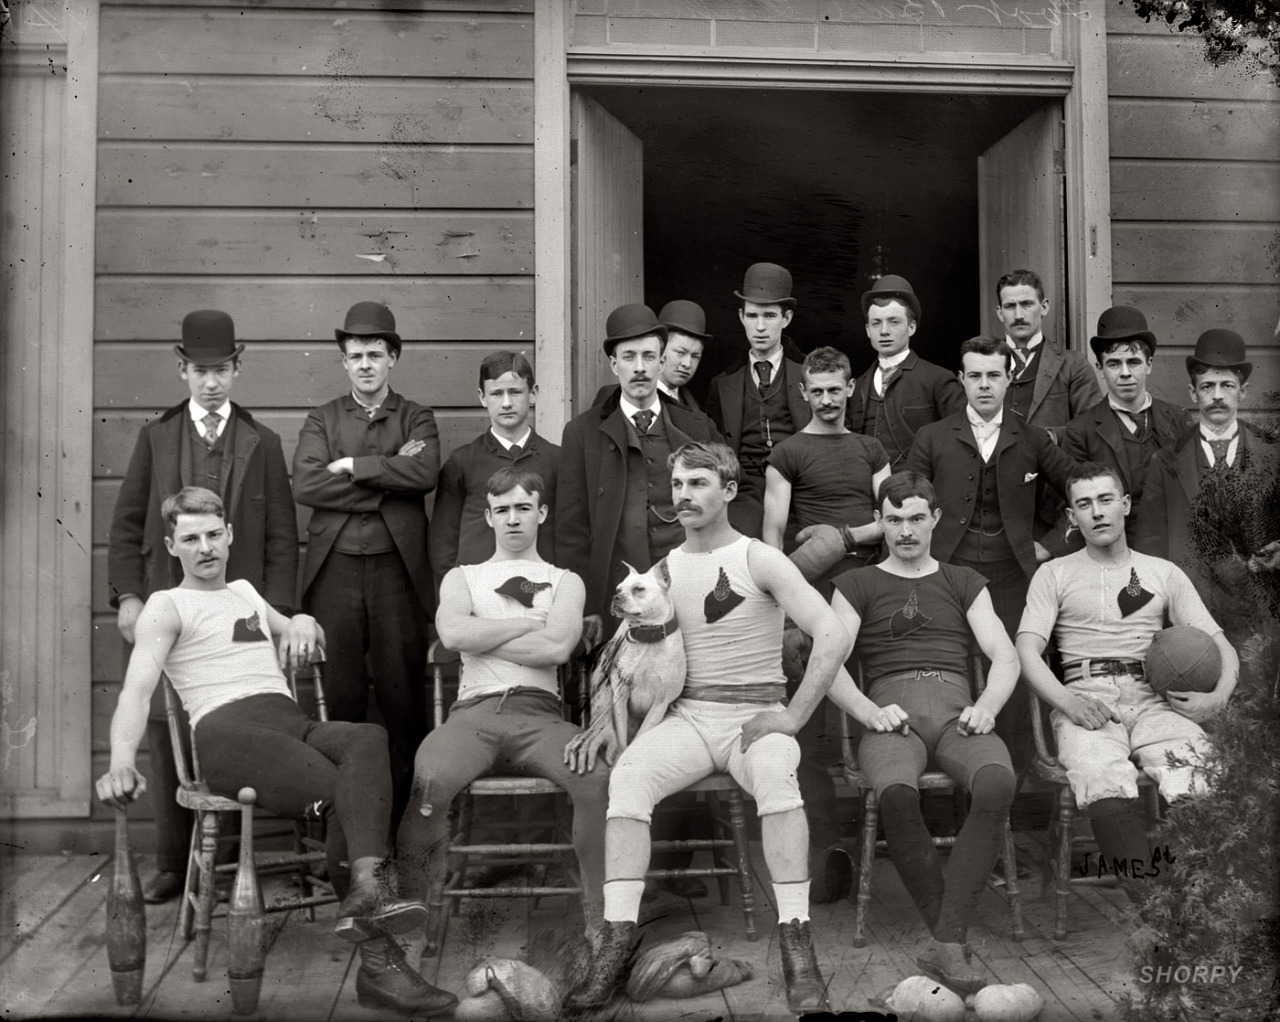 vintagesportspictures:  Unidentified Athletic Club (c. 1895-1910)